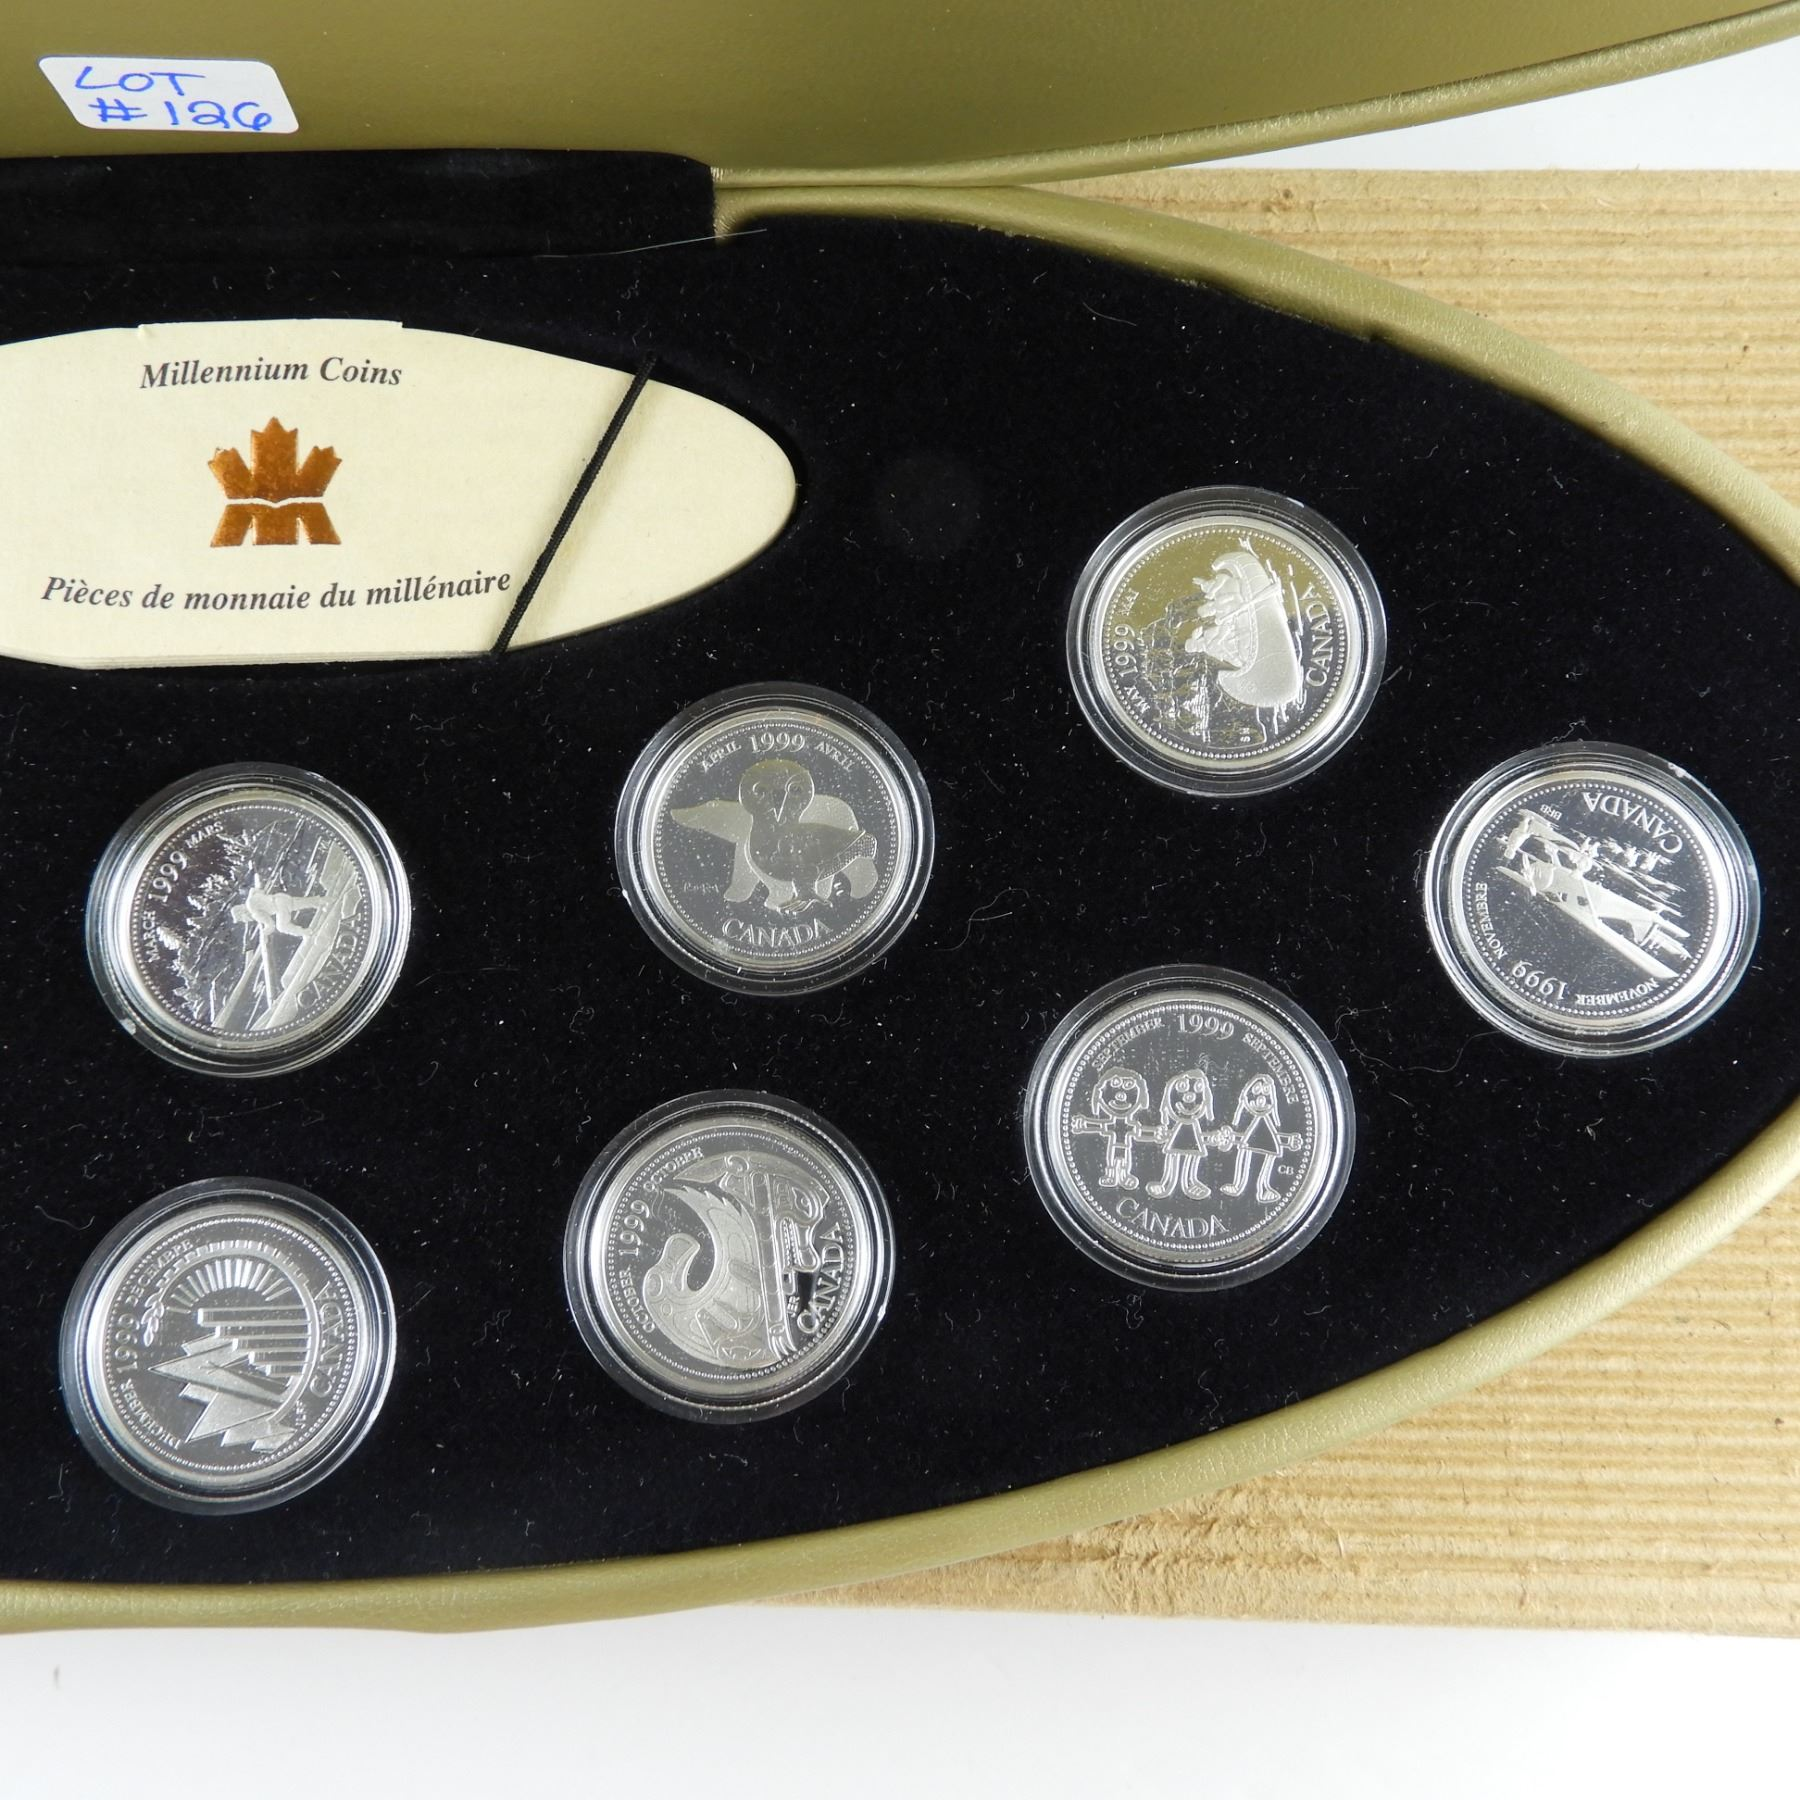 1999 CANADA Millennium Sterling Silver Quarter for March in proof finish